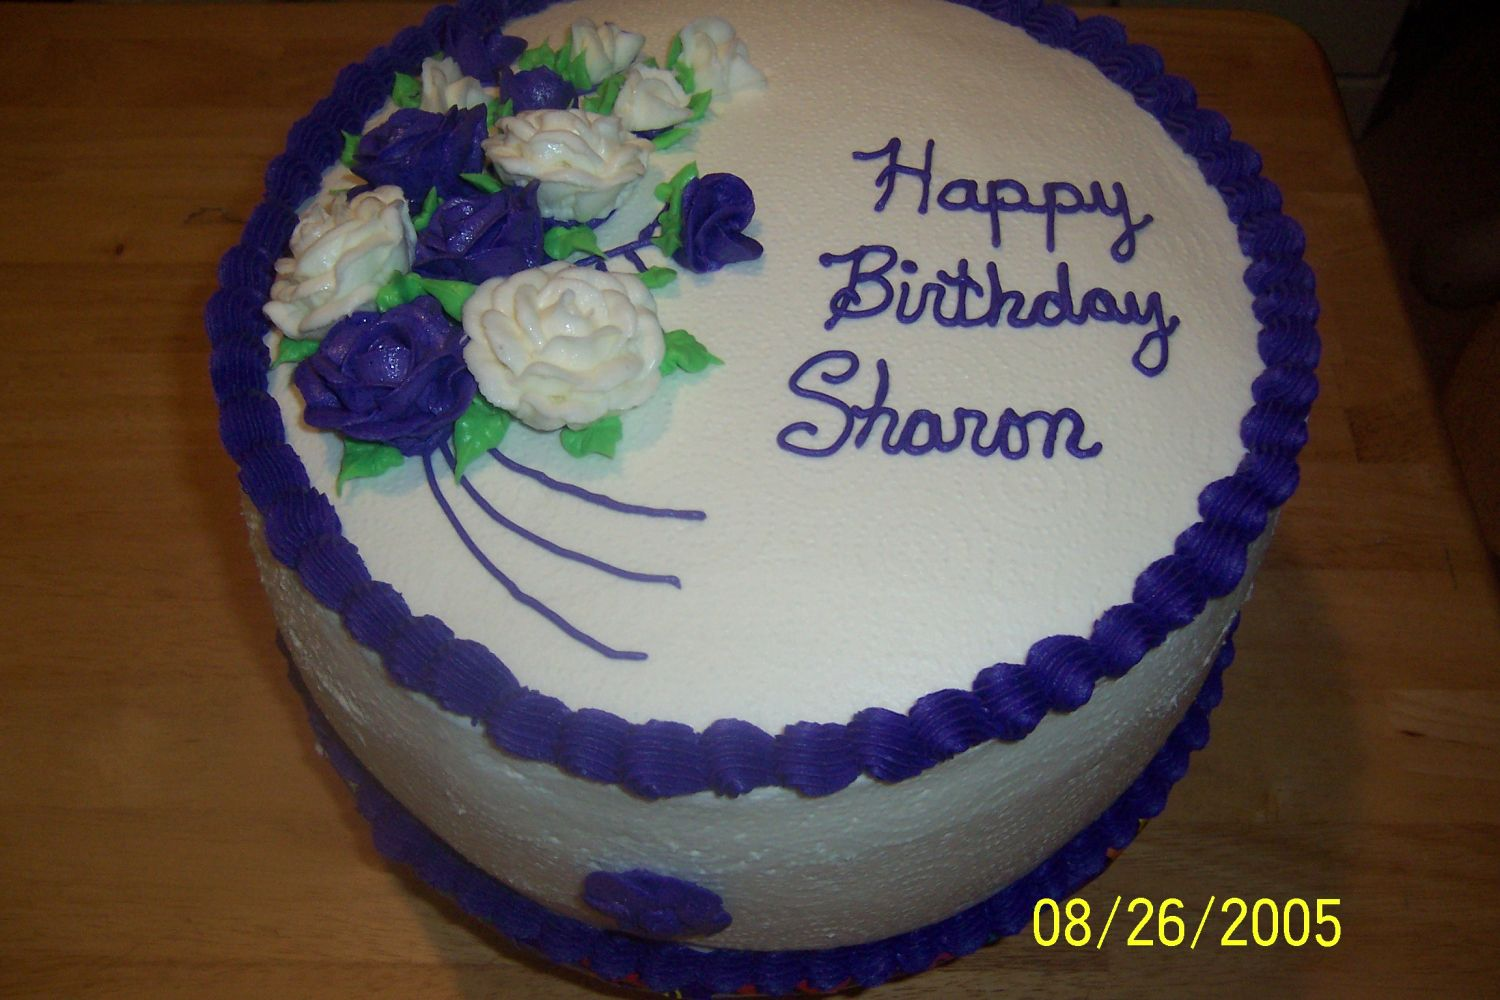 birthday cake sharon.